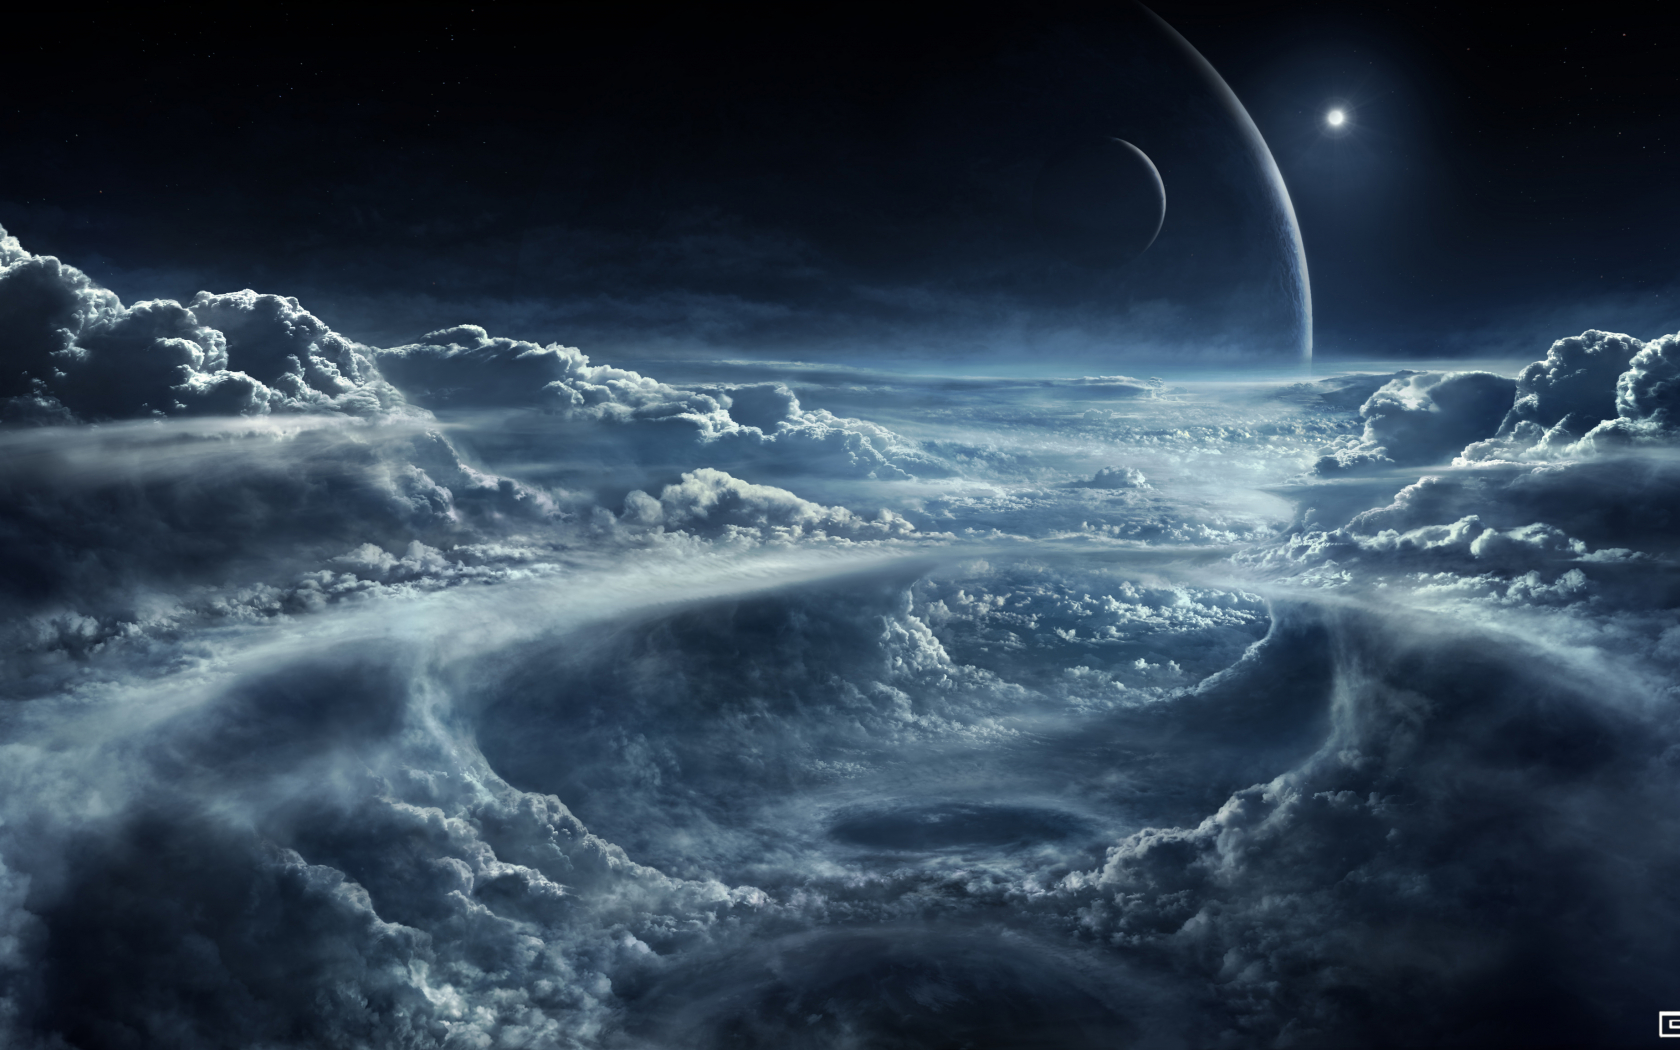 Free Download 4k Space And Clouds Wallpaper 4k Wallpaper Ultra Hd 4k Wallpapers 4096x2304 For Your Desktop Mobile Tablet Explore 42 4k Space Wallpaper Super Hd Wallpapers 3840x2160 Wallpaper